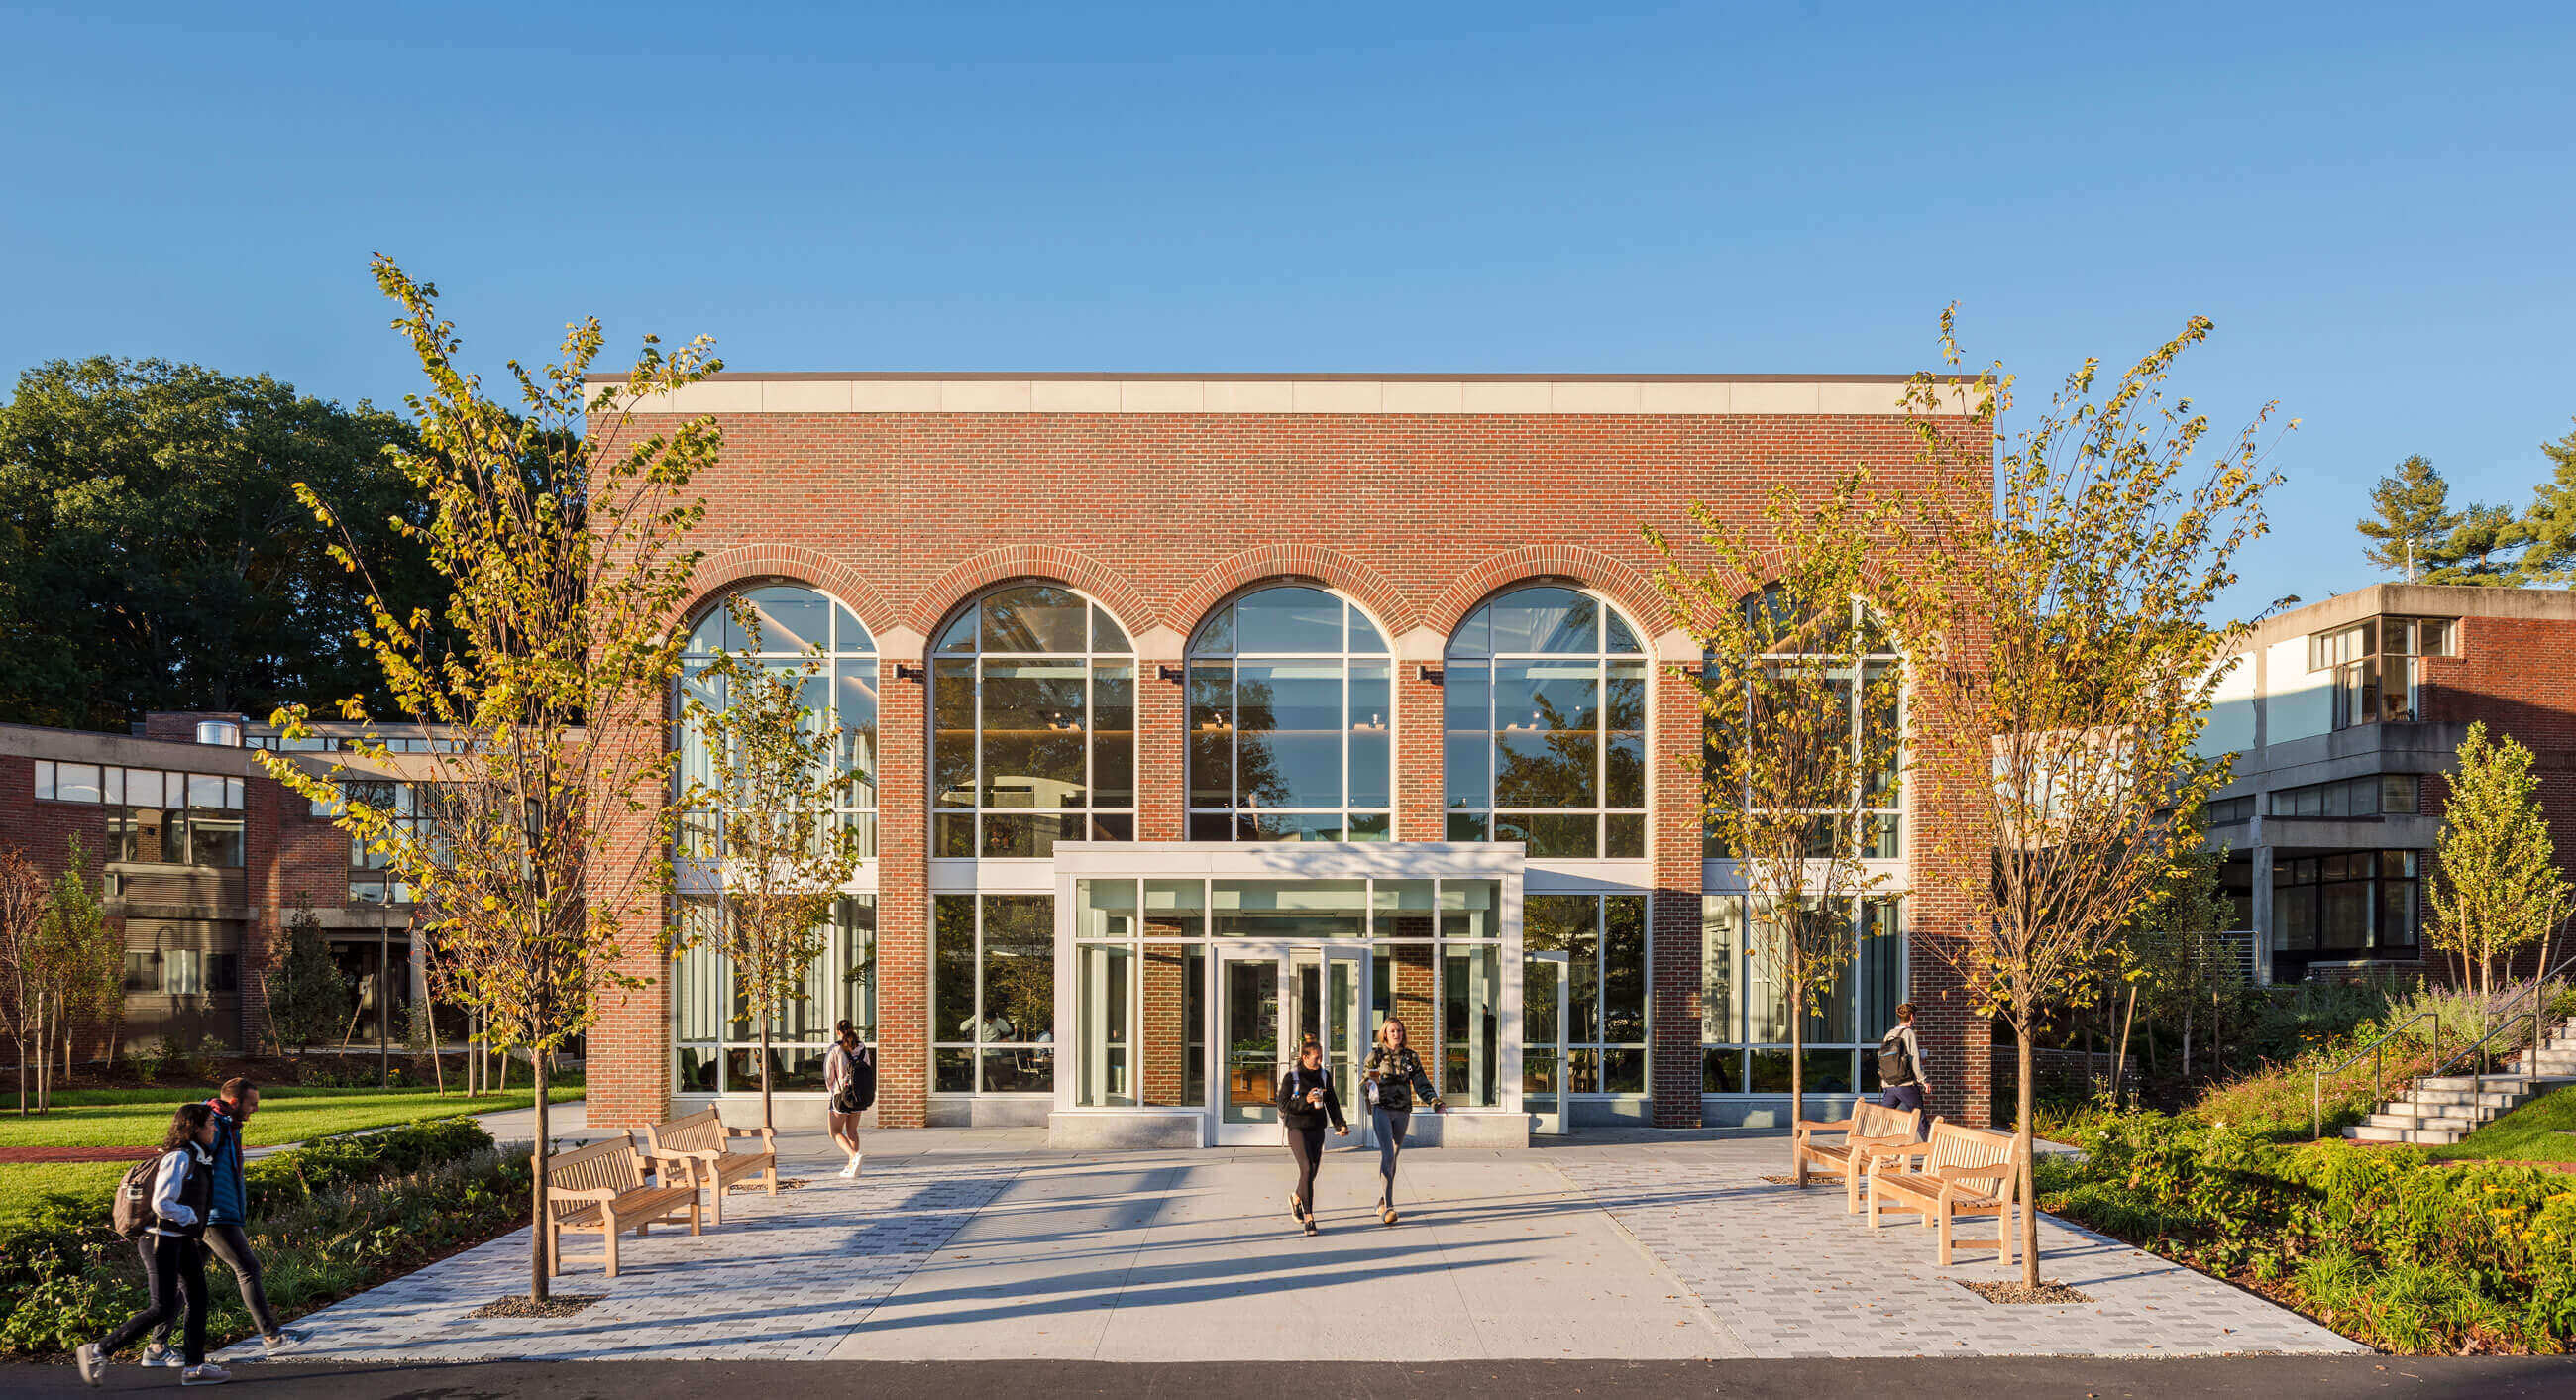 Two college students walking out of the front entrance to the Commons at Babson's Horn Library, a brick rectangular prism with tall arched windows.